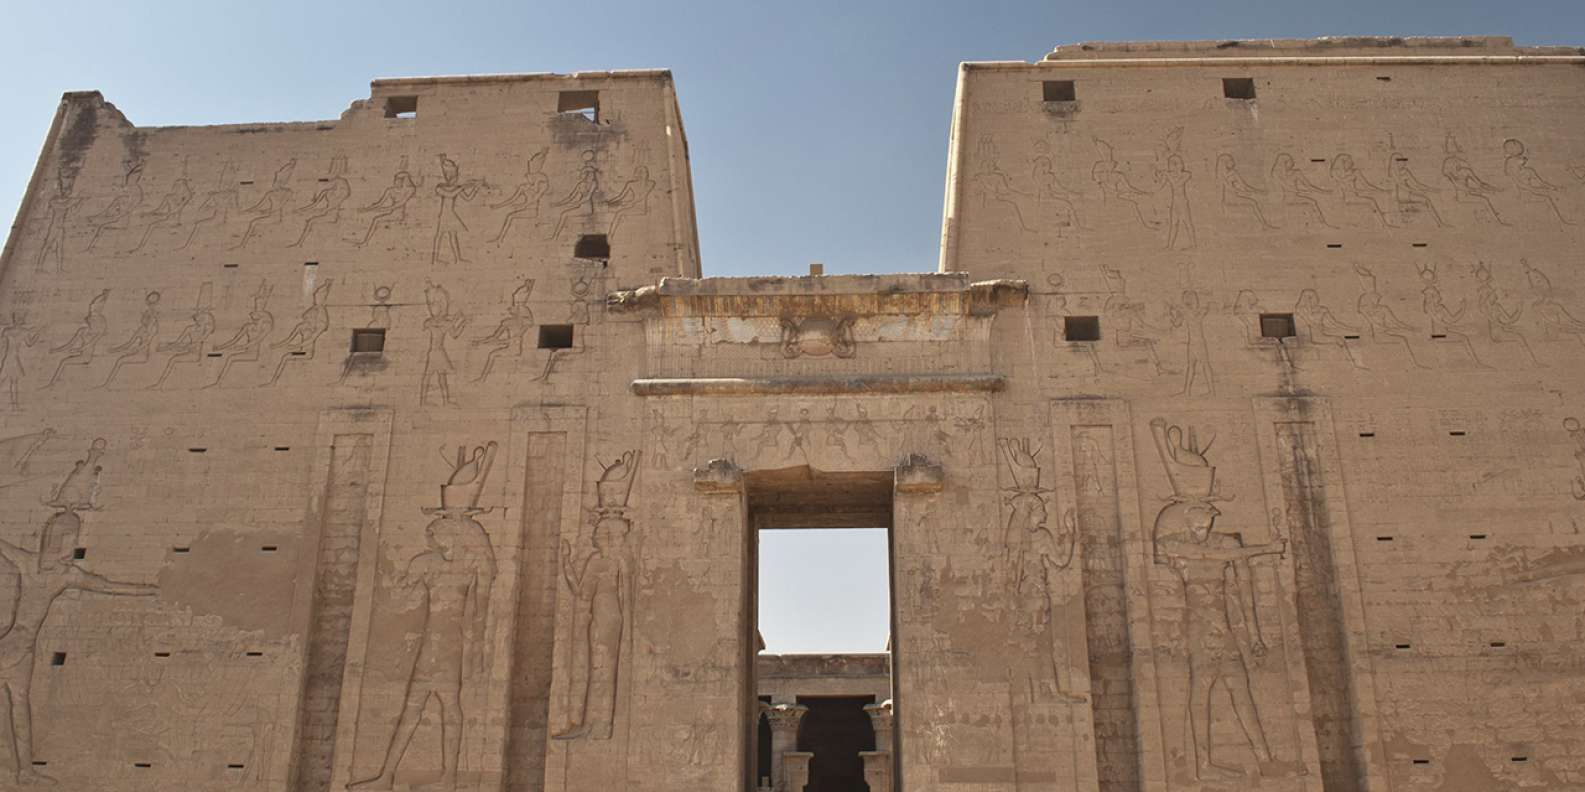 Day 3: Edfu Temple / Sailing to Luxor / Karnak and Luxor Temples